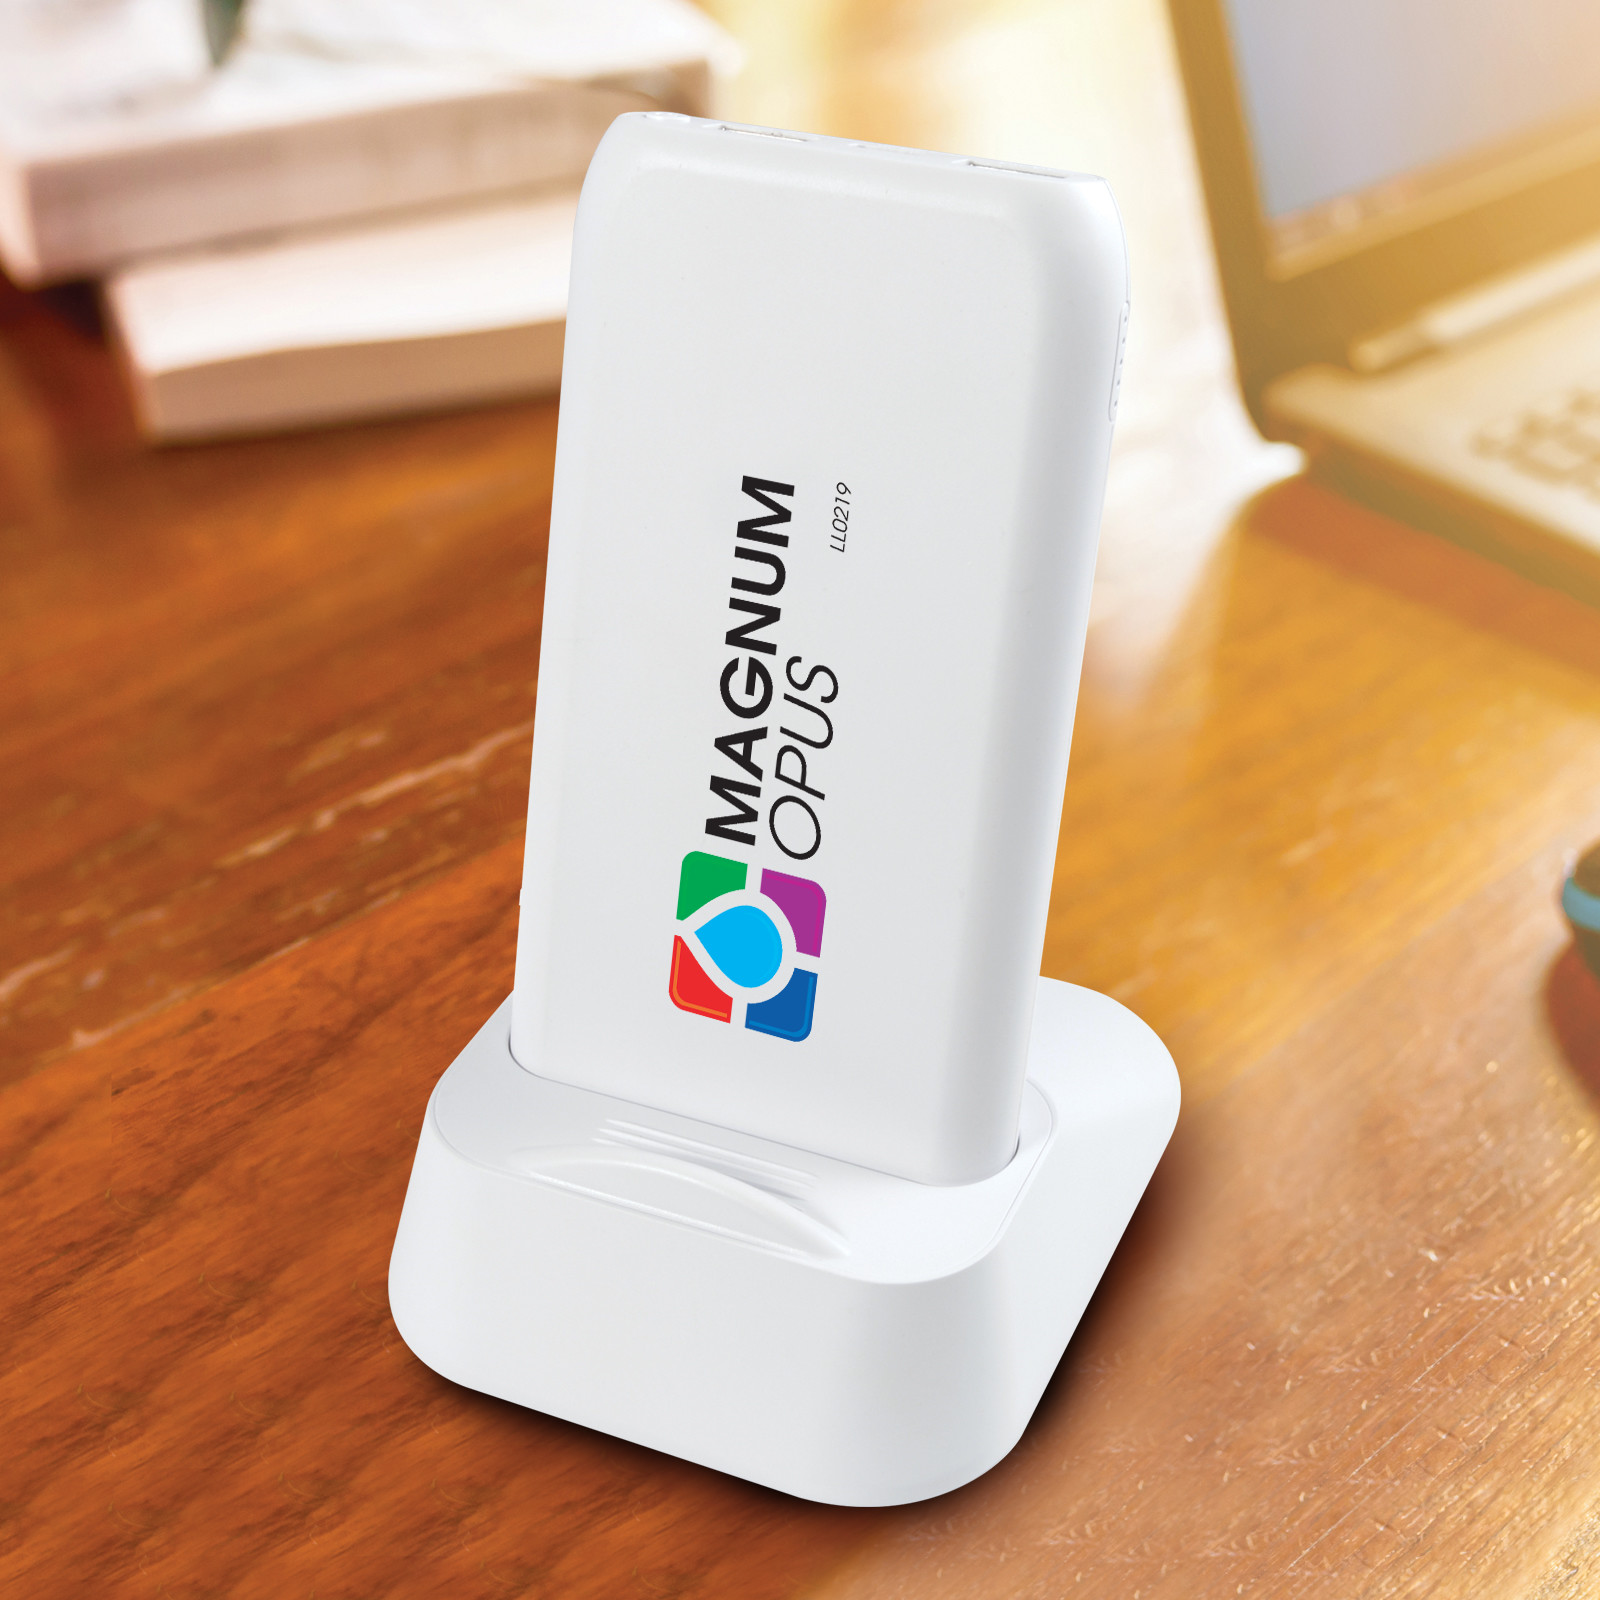 Promotional Product Boost Wireless Power Bank